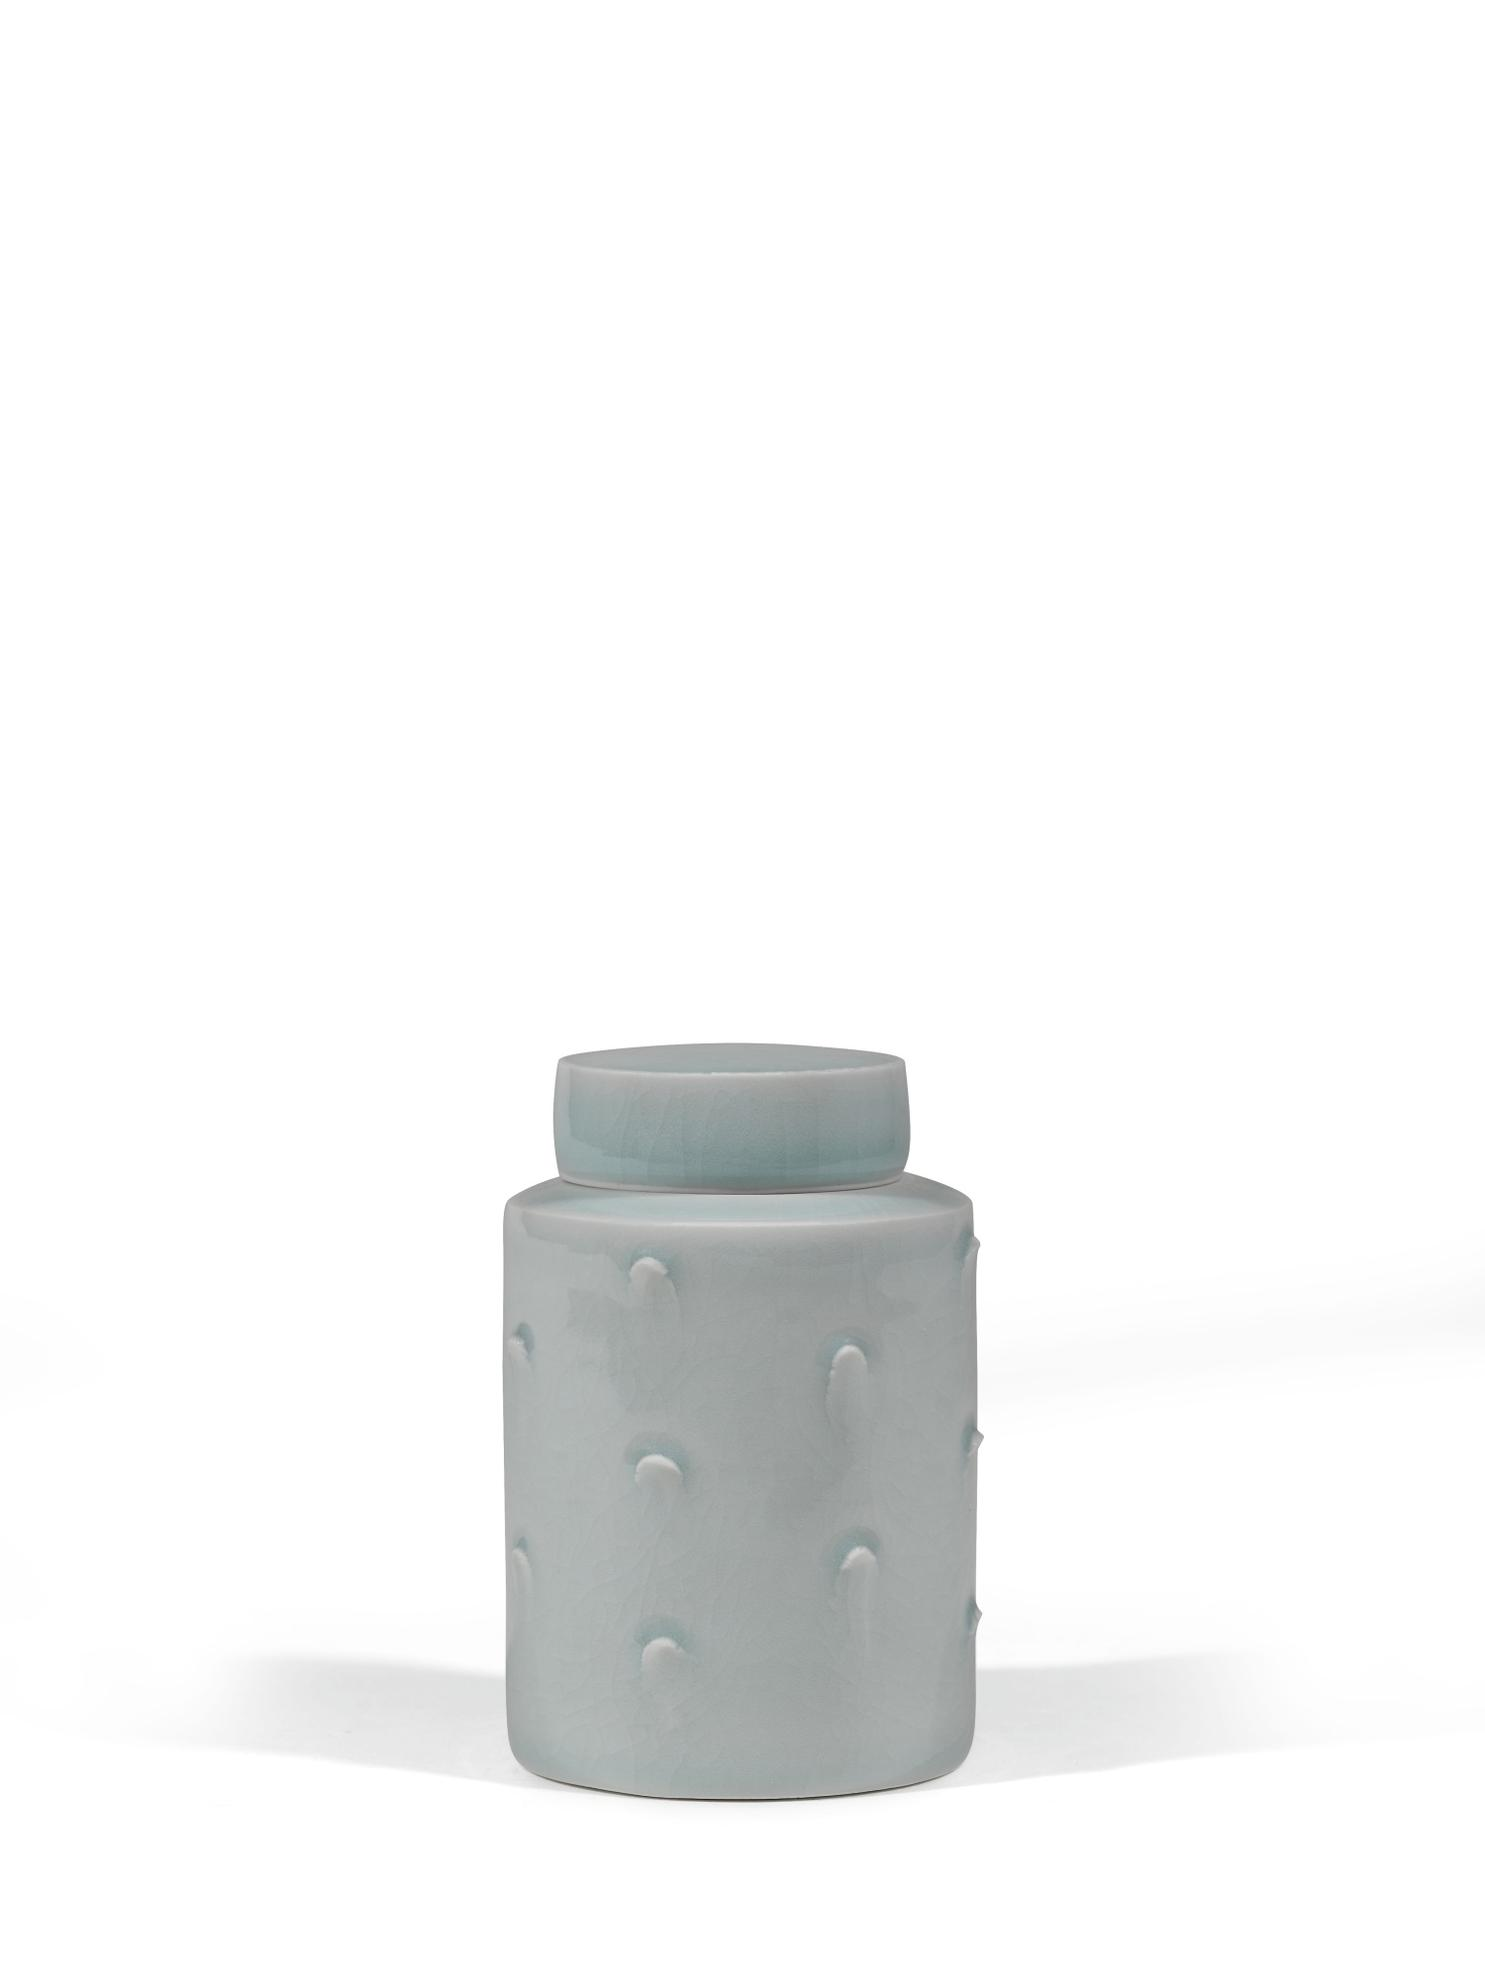 Chris Keenan - Small Canister-